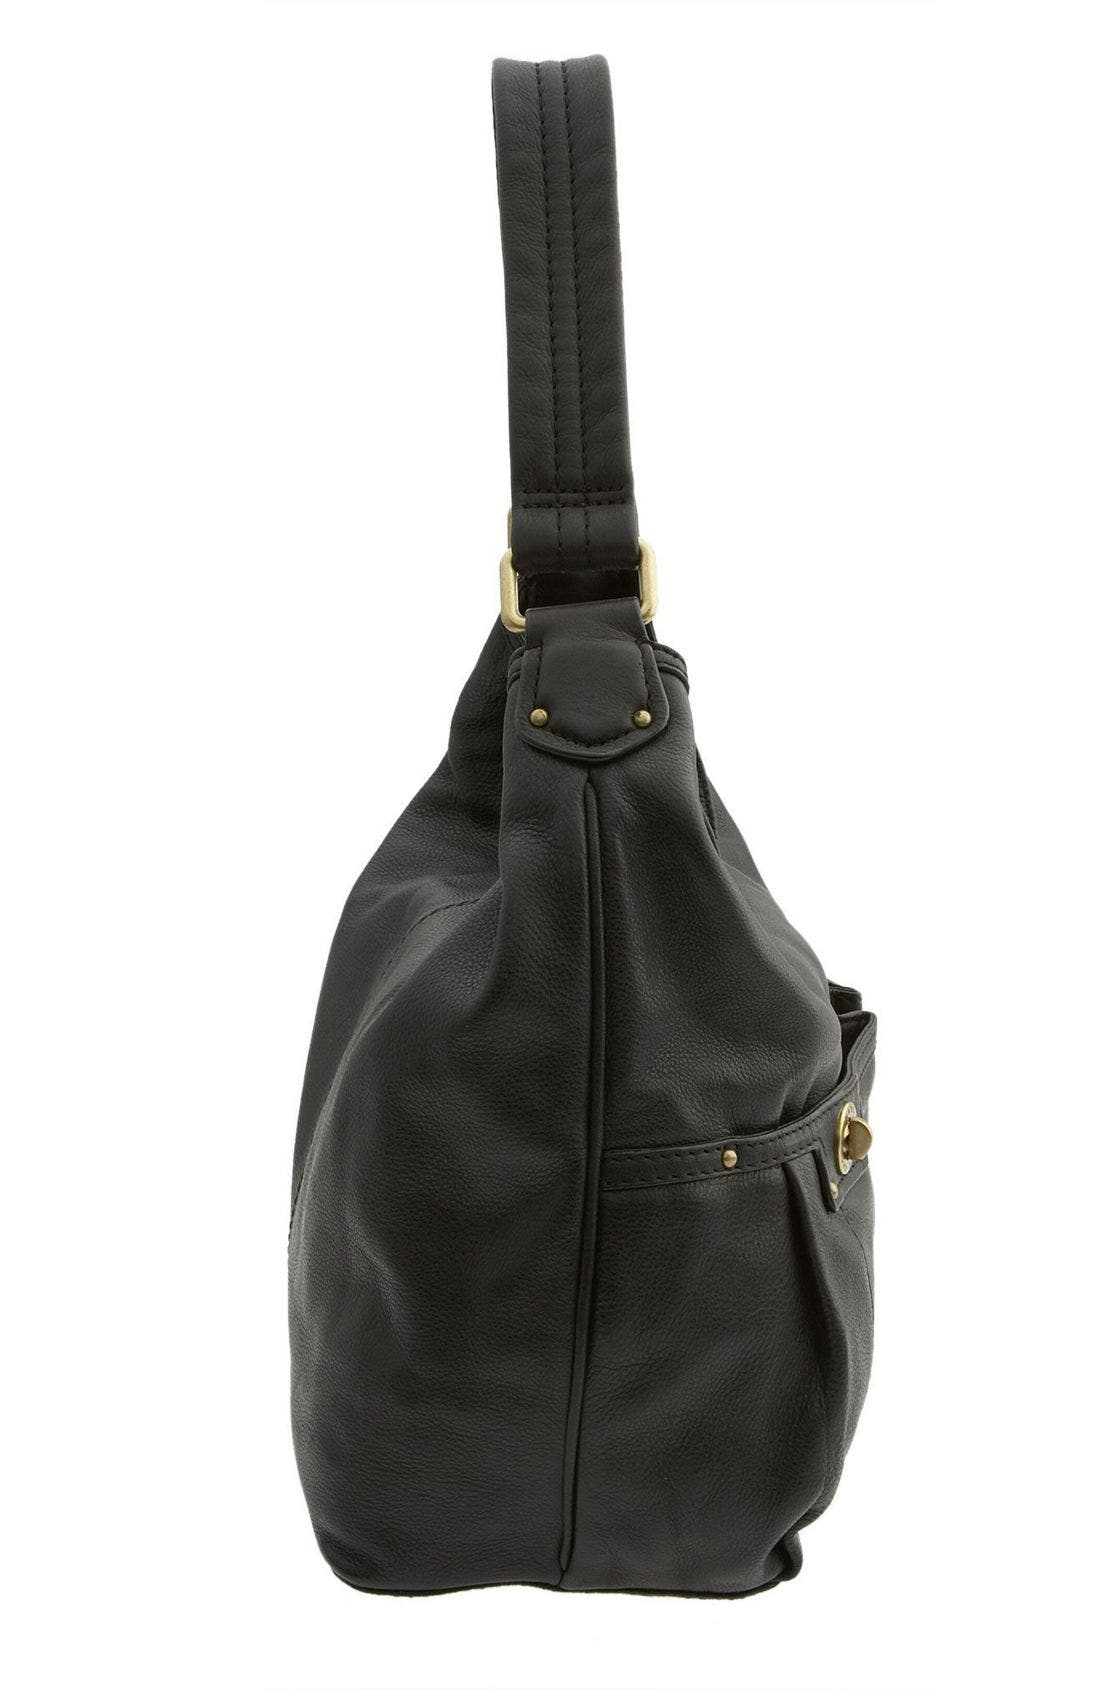 MARC BY MARC JACOBS 'Totally Turnlock - Faridah' Hobo Bag,                             Alternate thumbnail 2, color,                             001